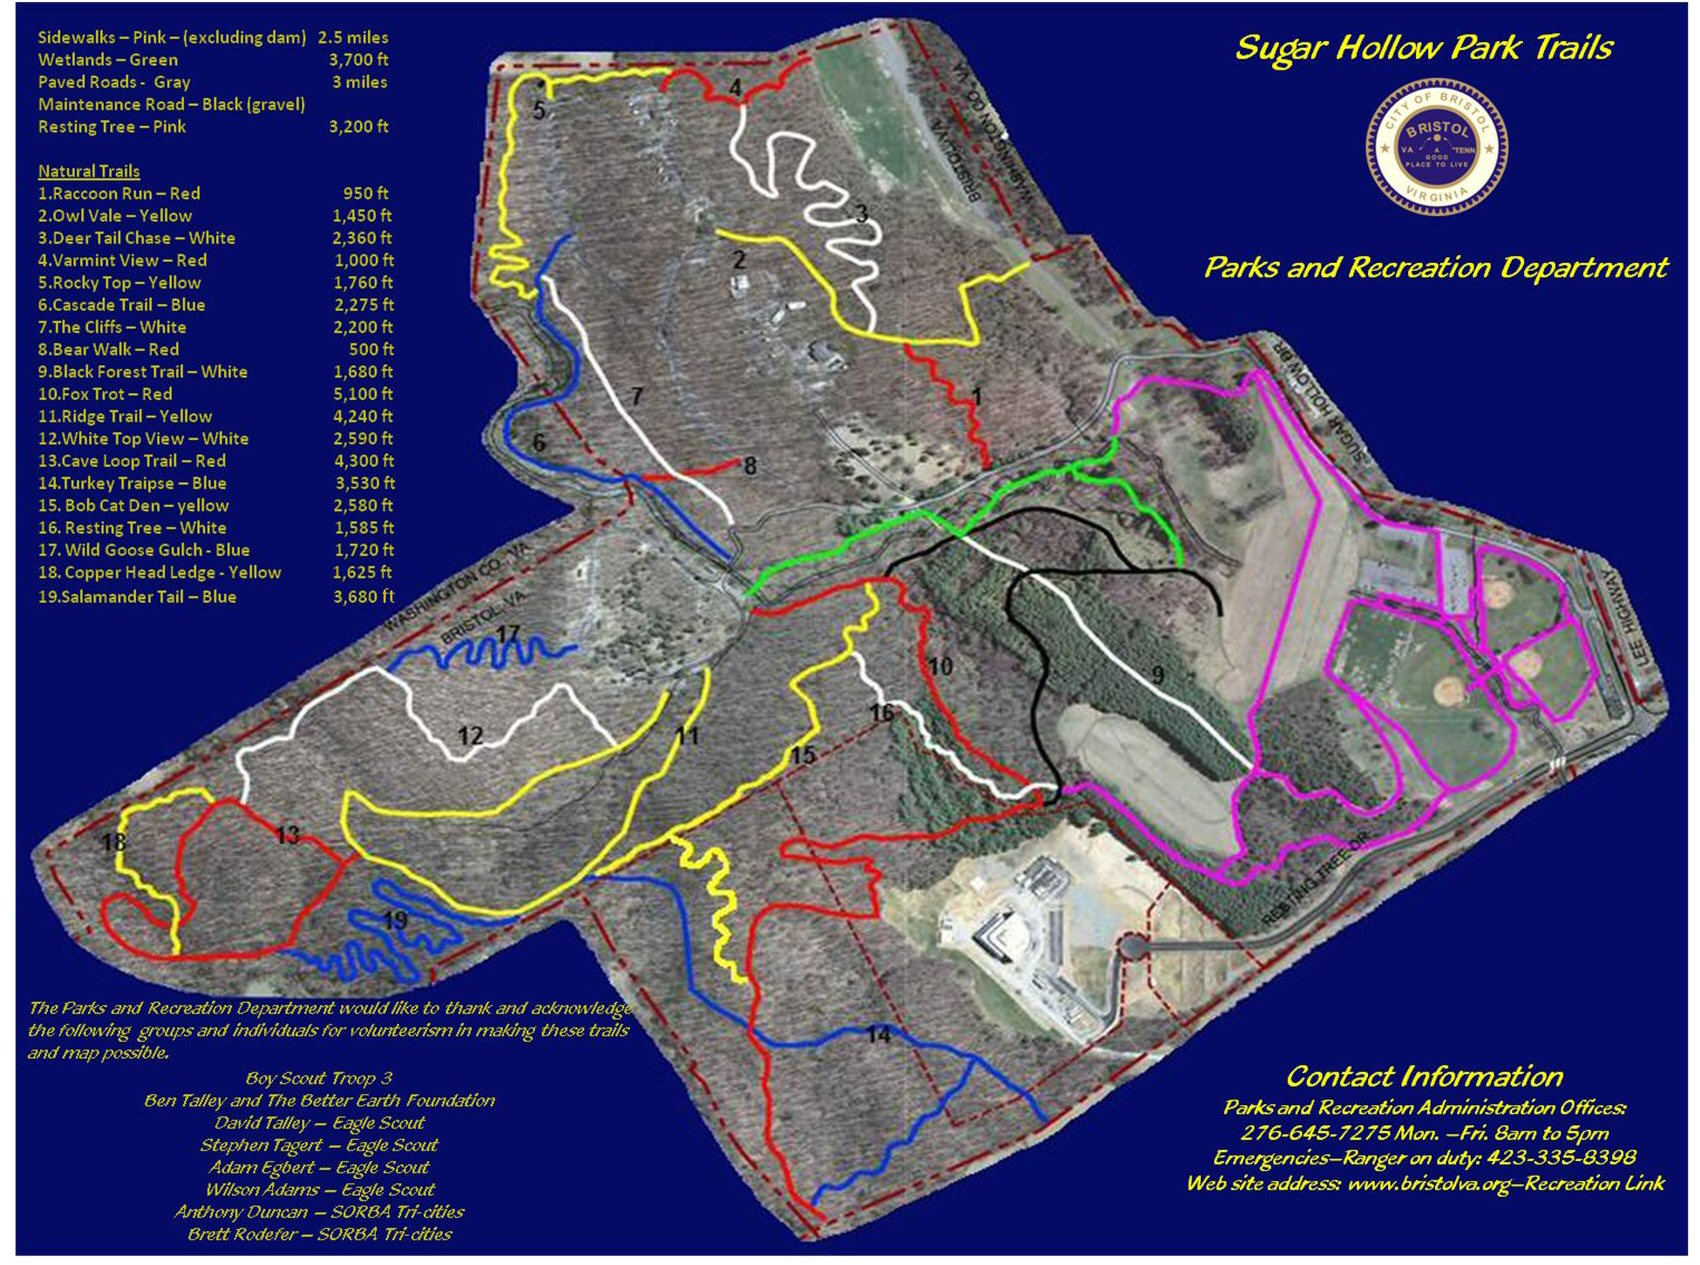 2013 Trail Map...some new trails and reroutes are not shown!